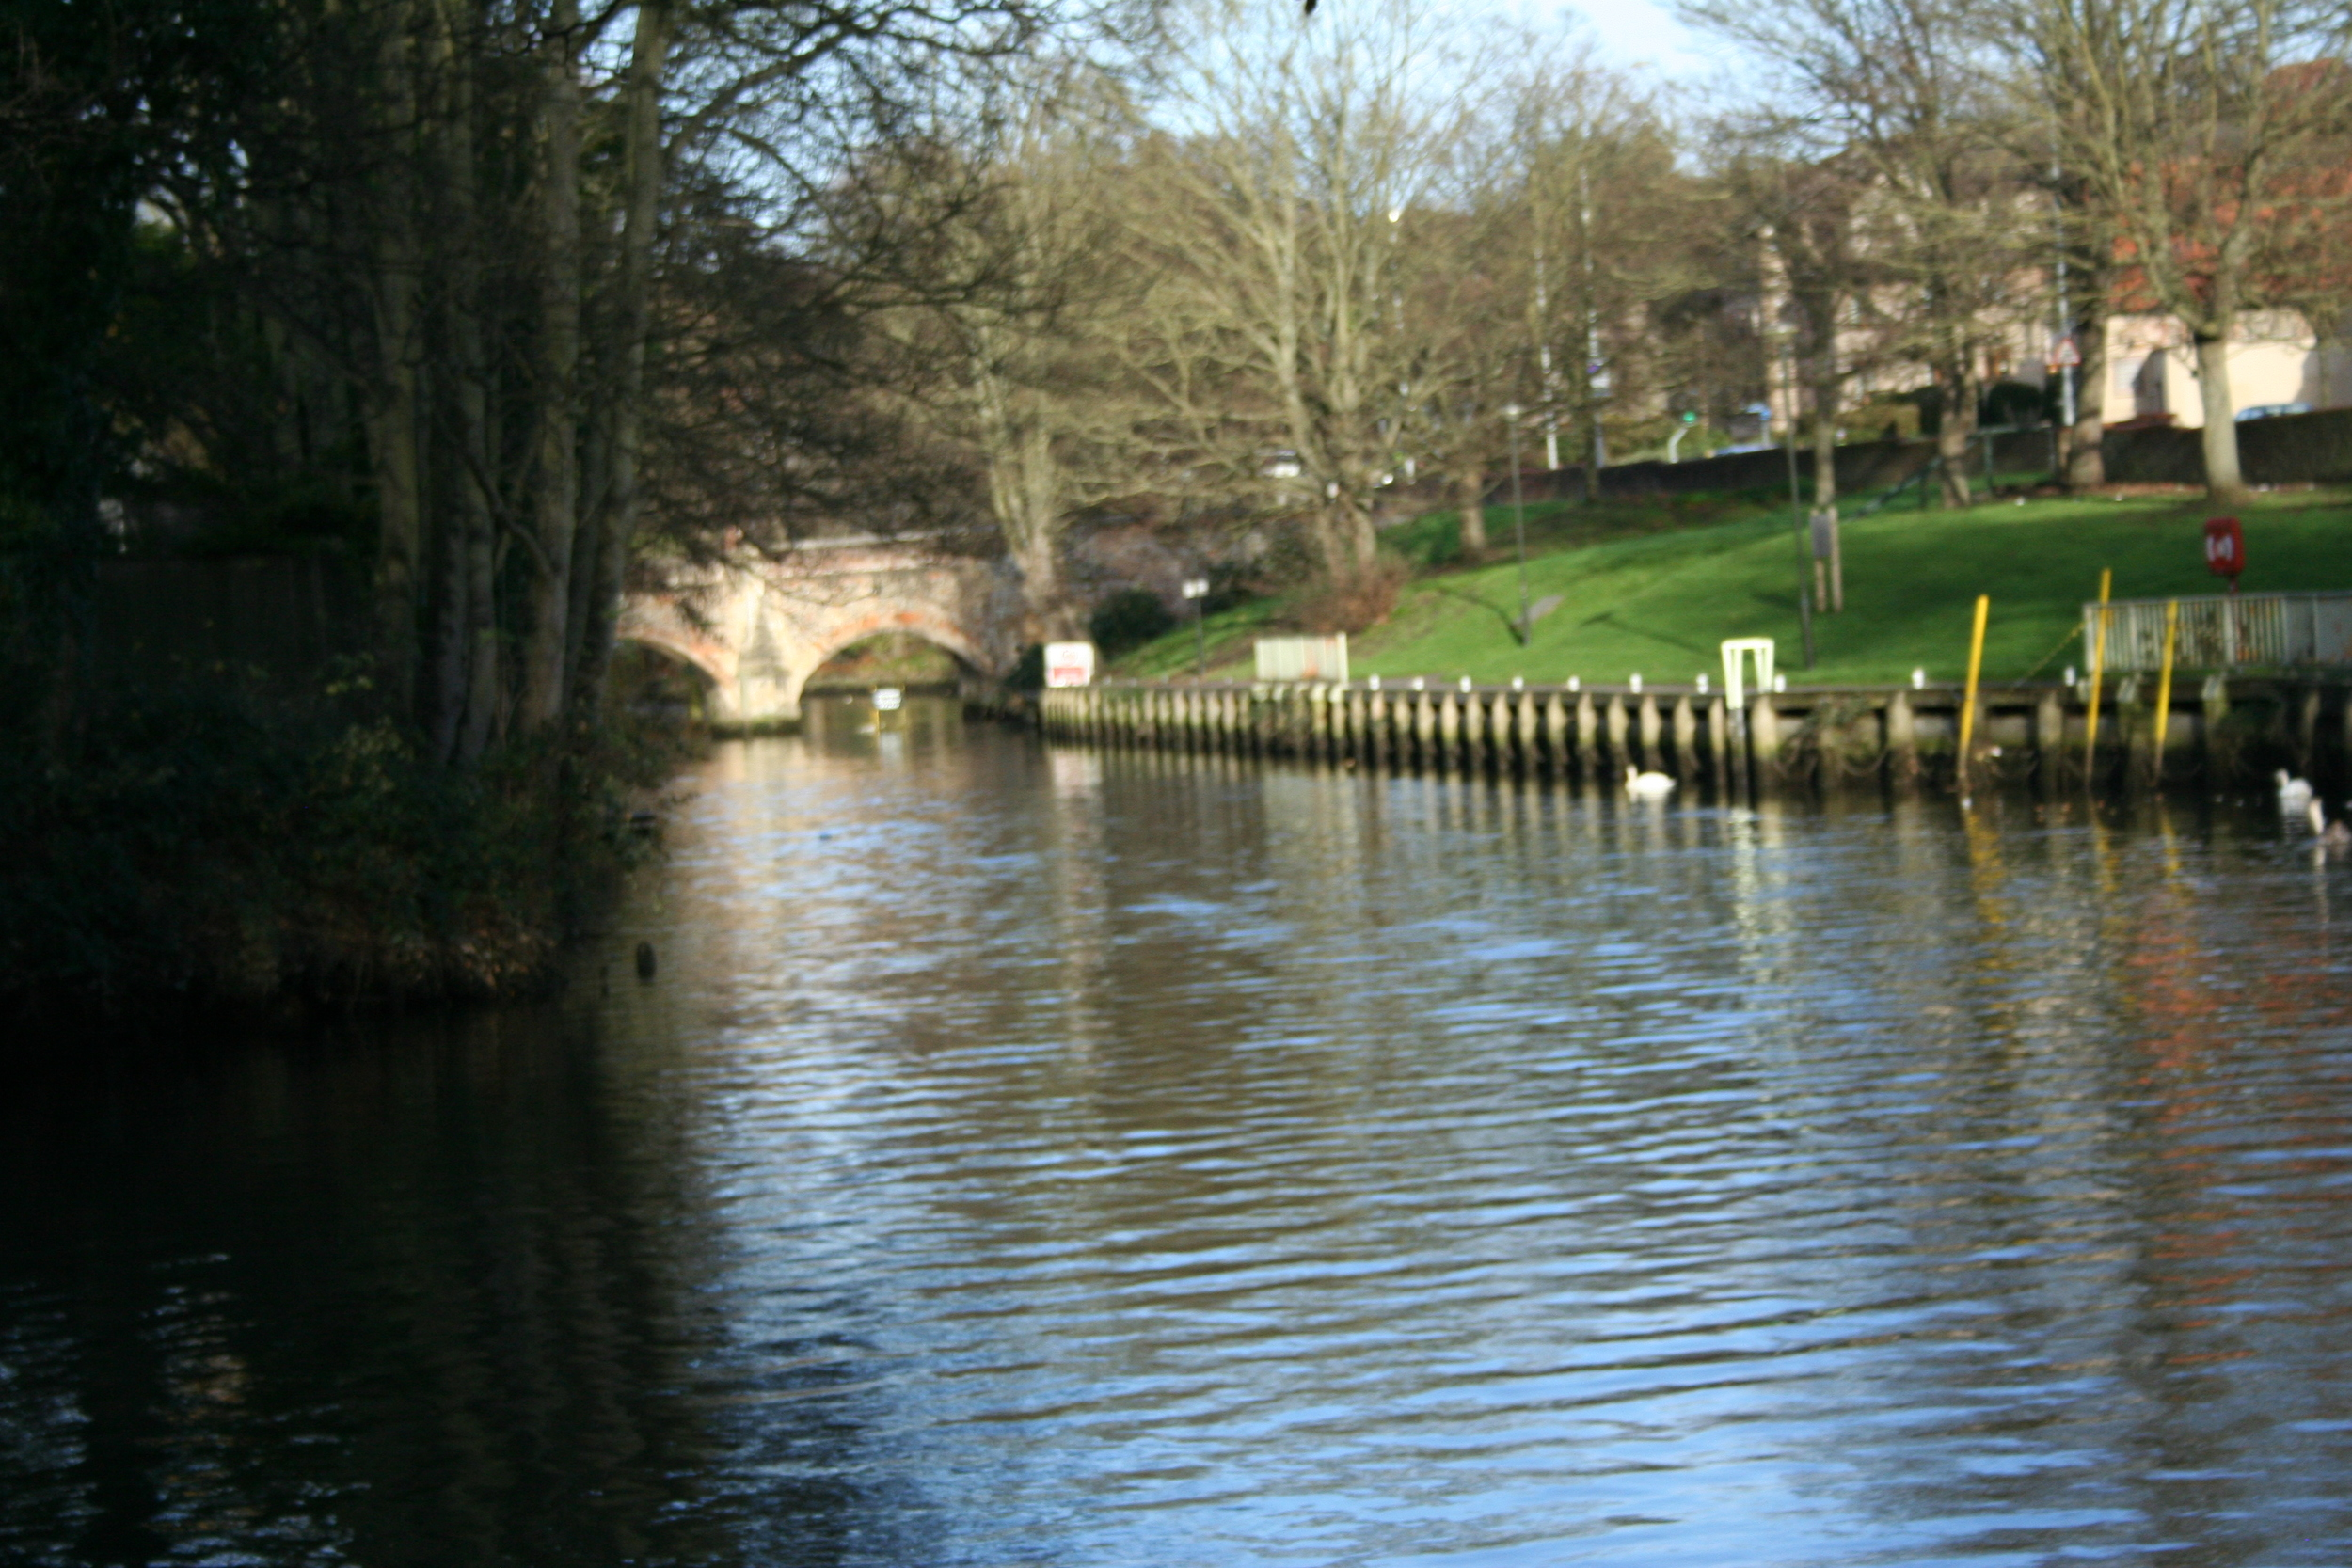 The River Yare in the middle of Norwich city.